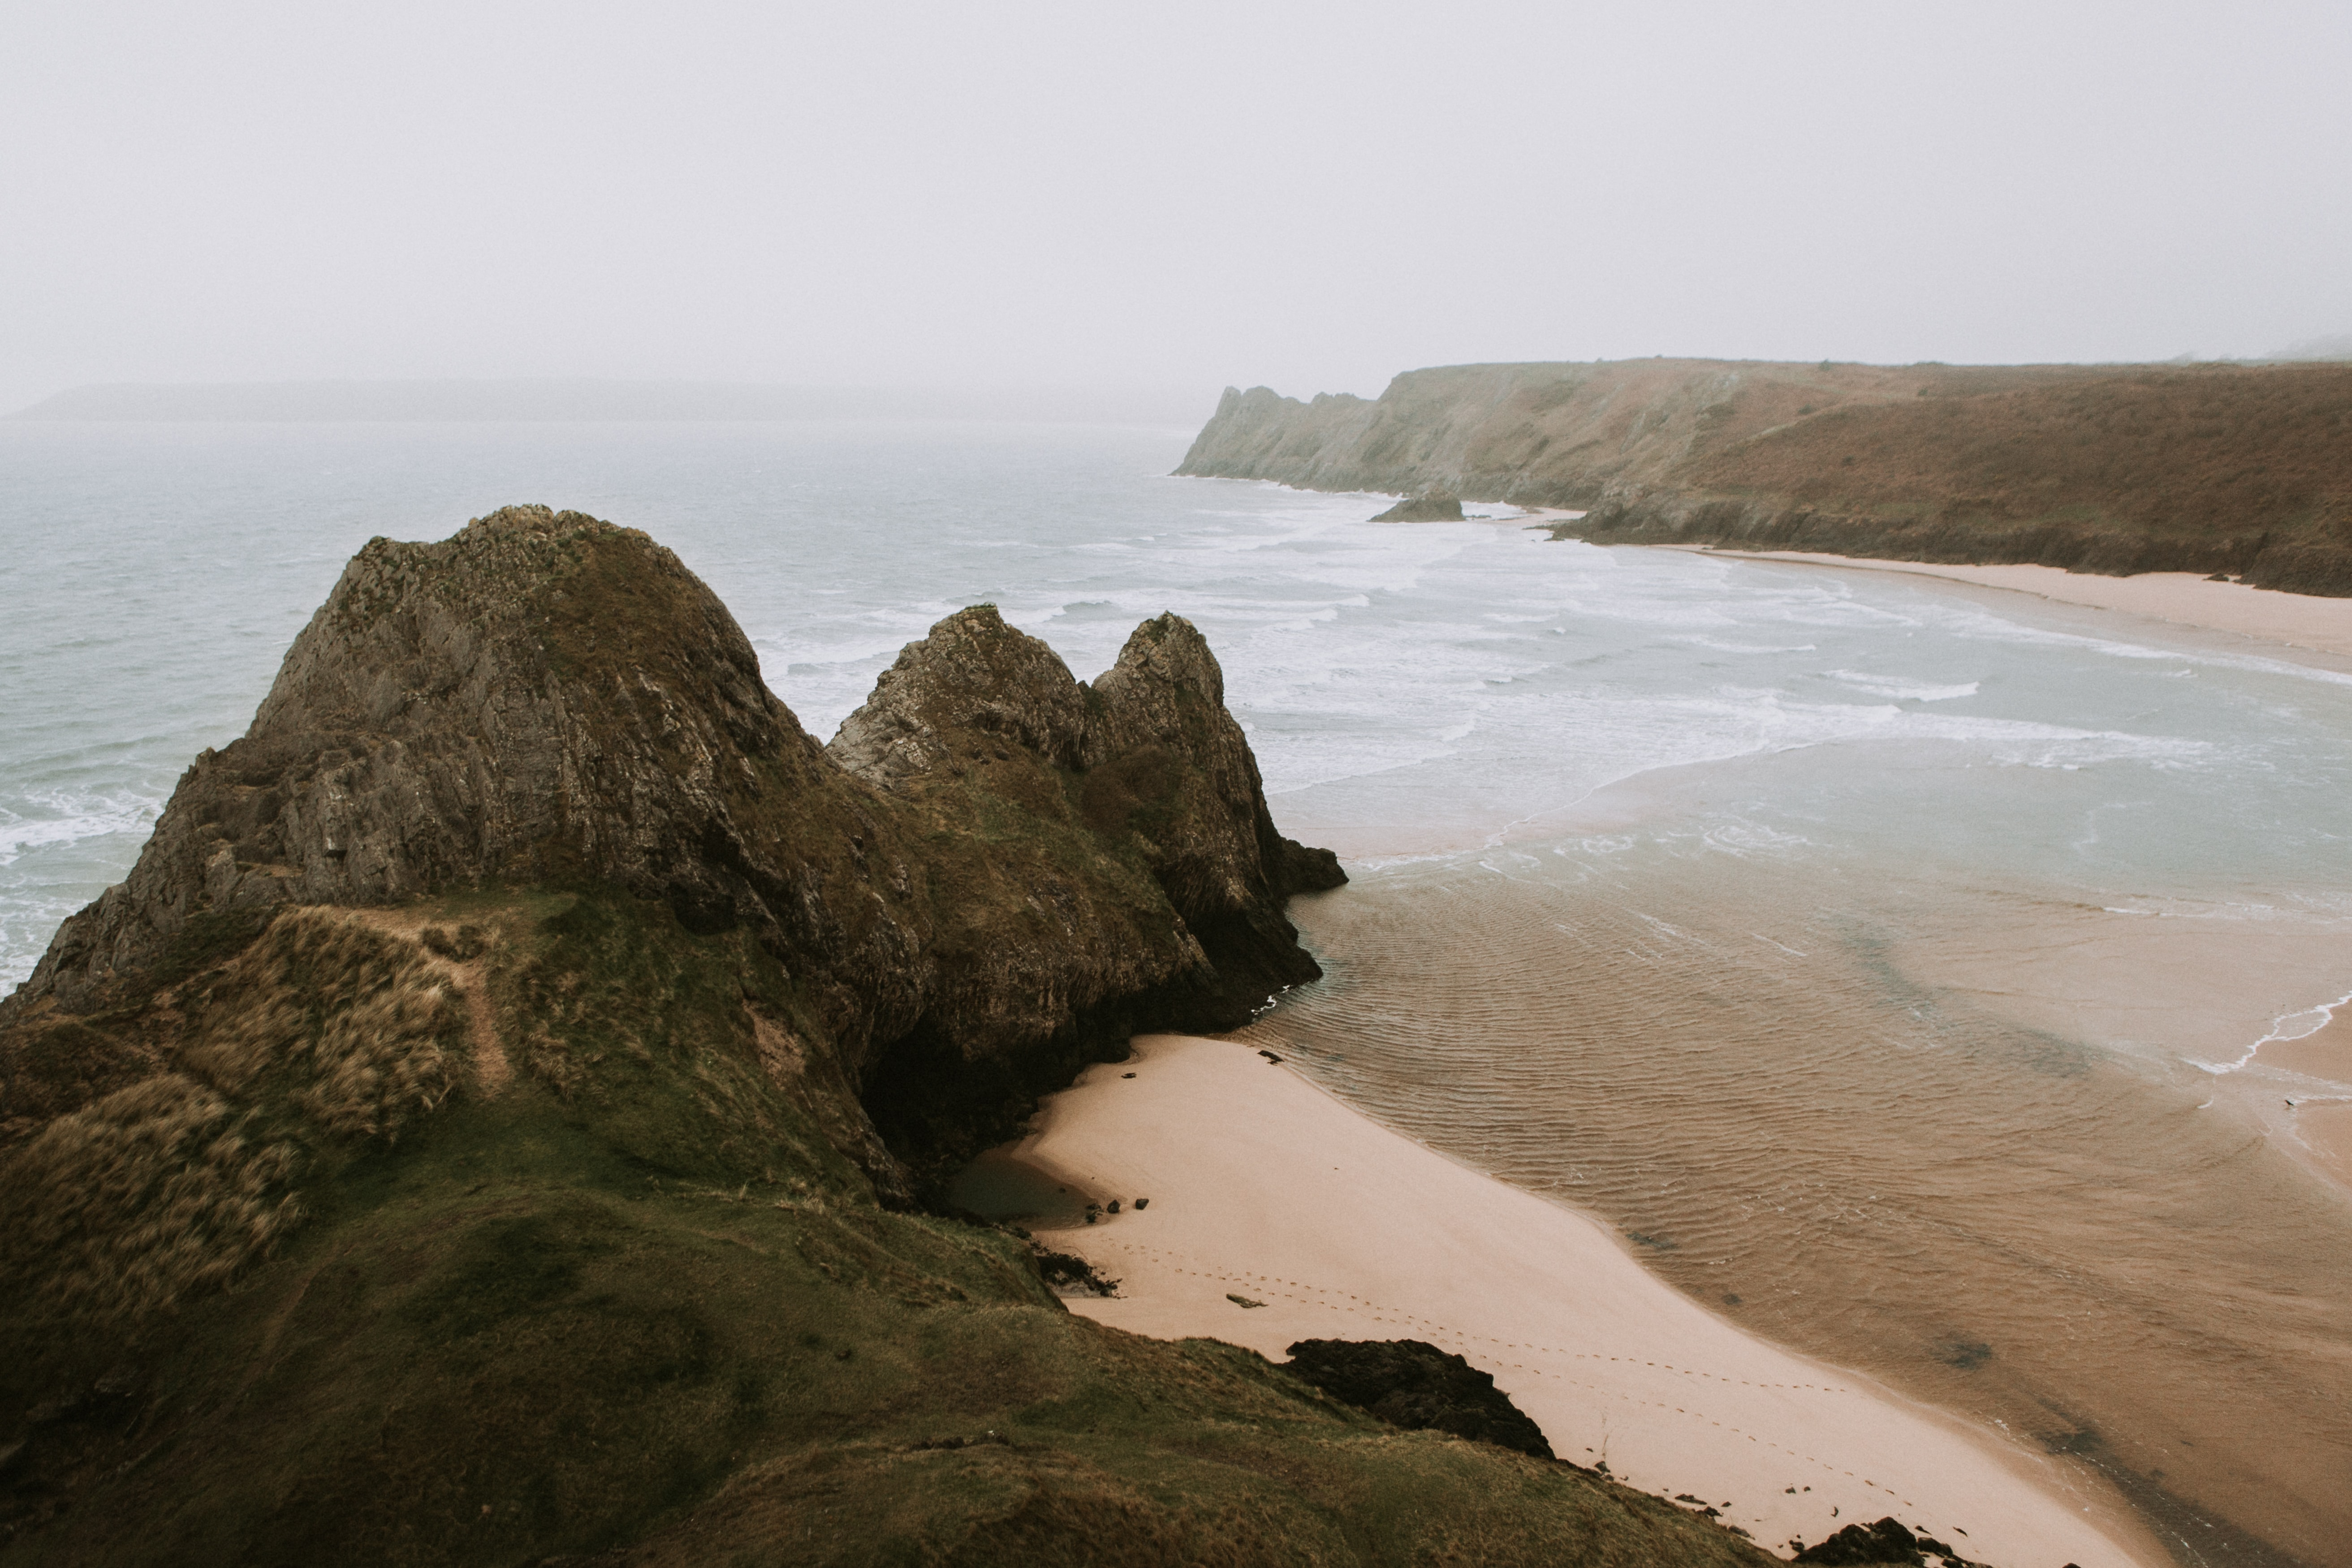 View of the ocean bay on a cloudy day at Three Cliff Bay